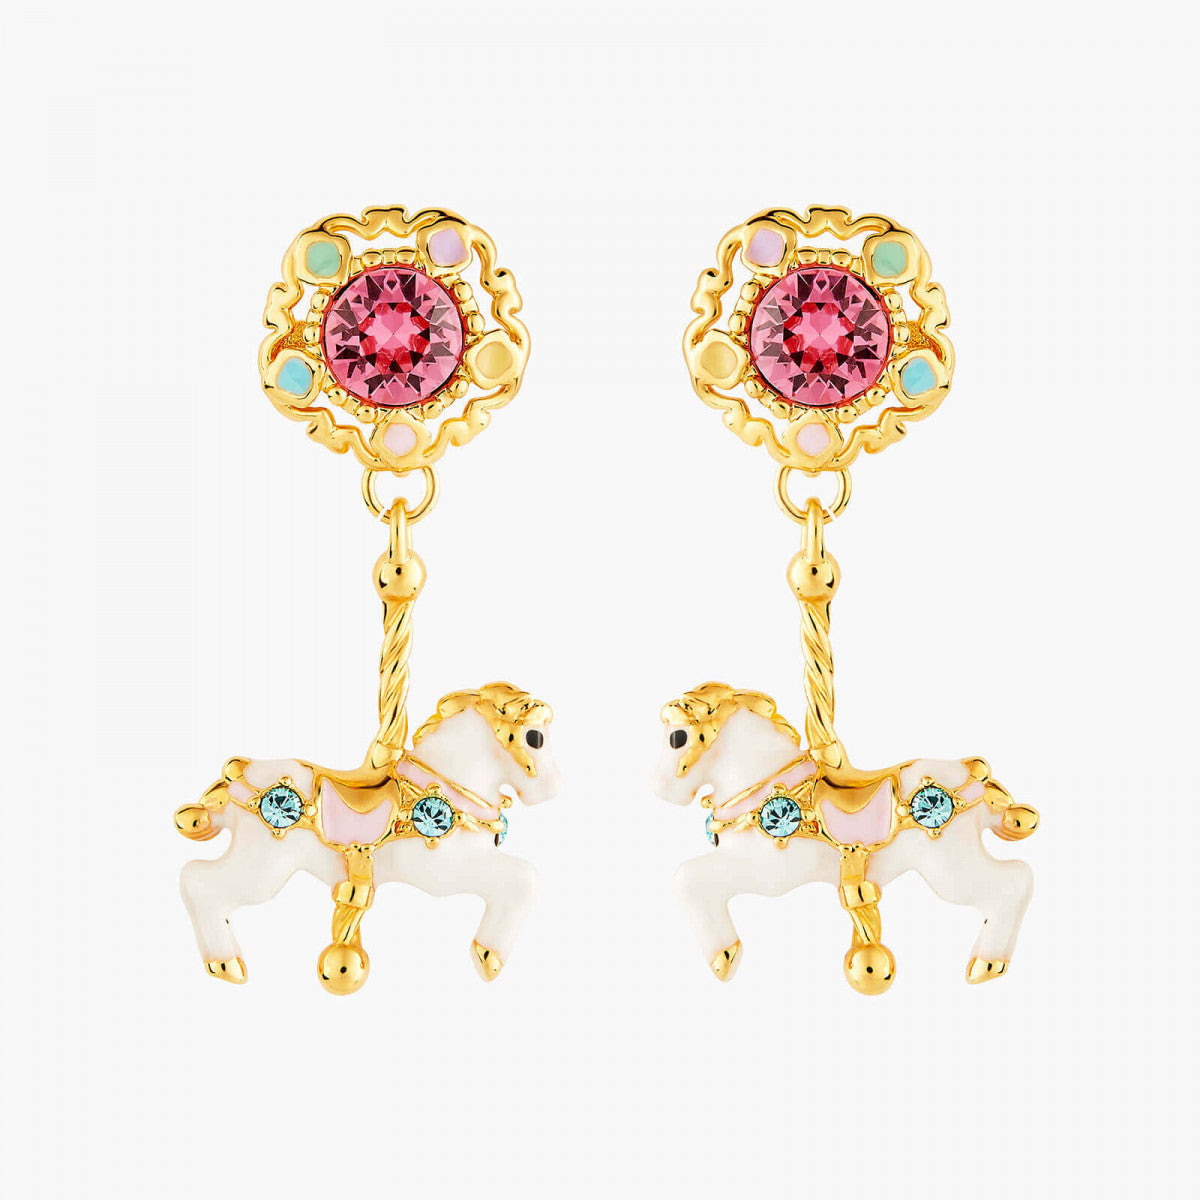 Carousel and Horse post earrings